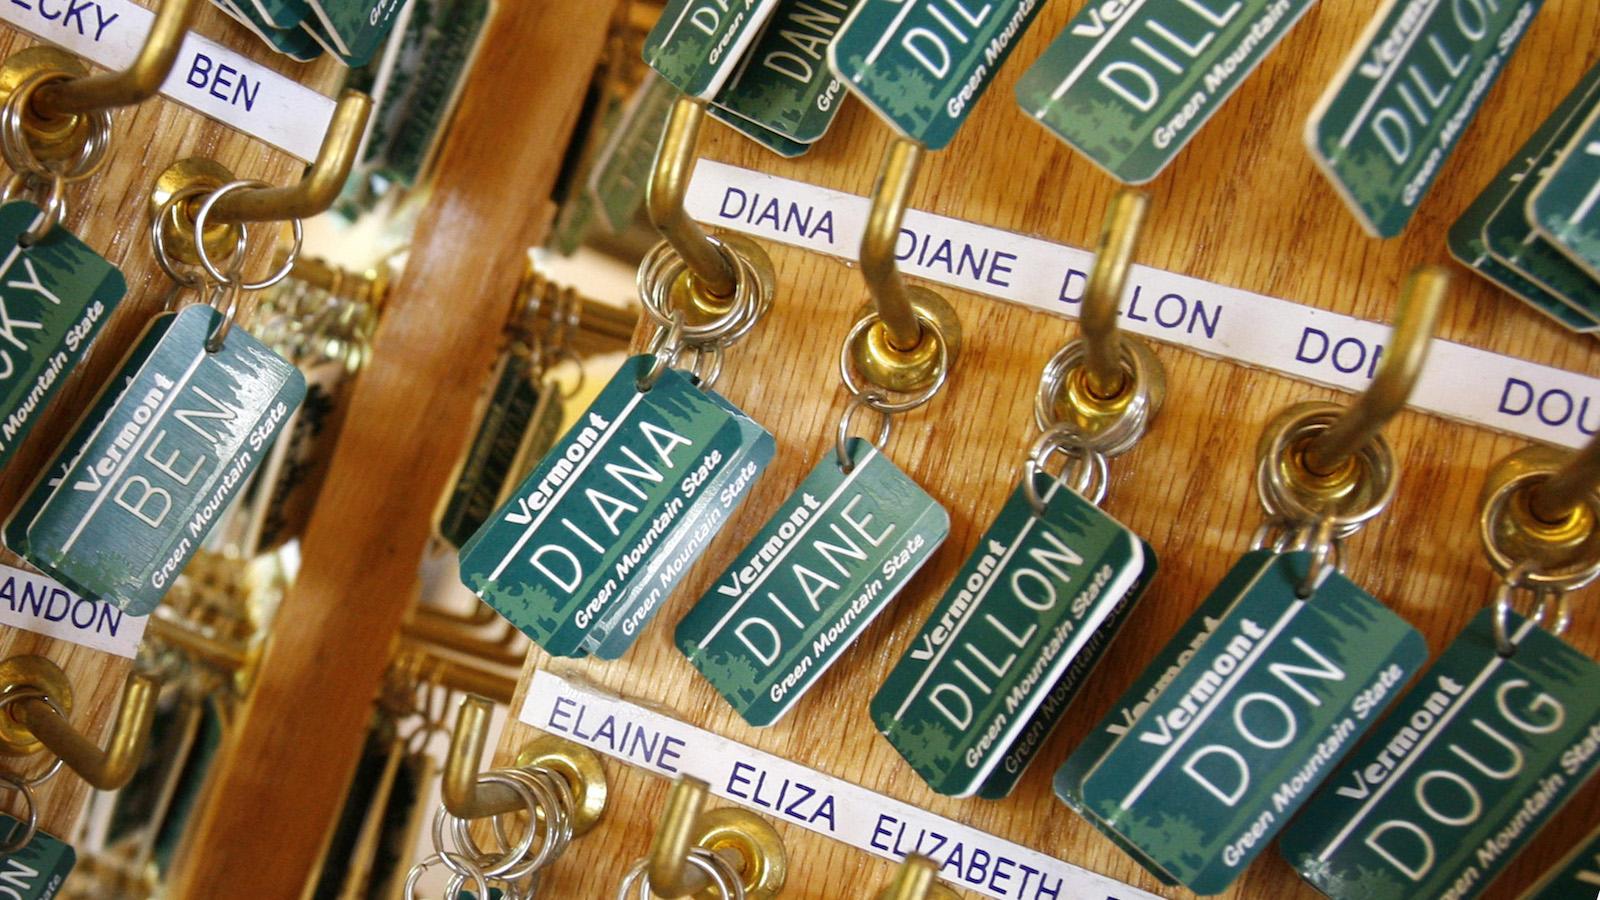 FILE - In this May, 2008 file photo, luggage tags with children's names are displayed in East Montpelier, Vt.  Jacob and Sophia top the list of most popular baby names again. It's Jacob's 14th straight year at the top and the second year in a row for Sophia.  (AP Photo/Toby Talbot)